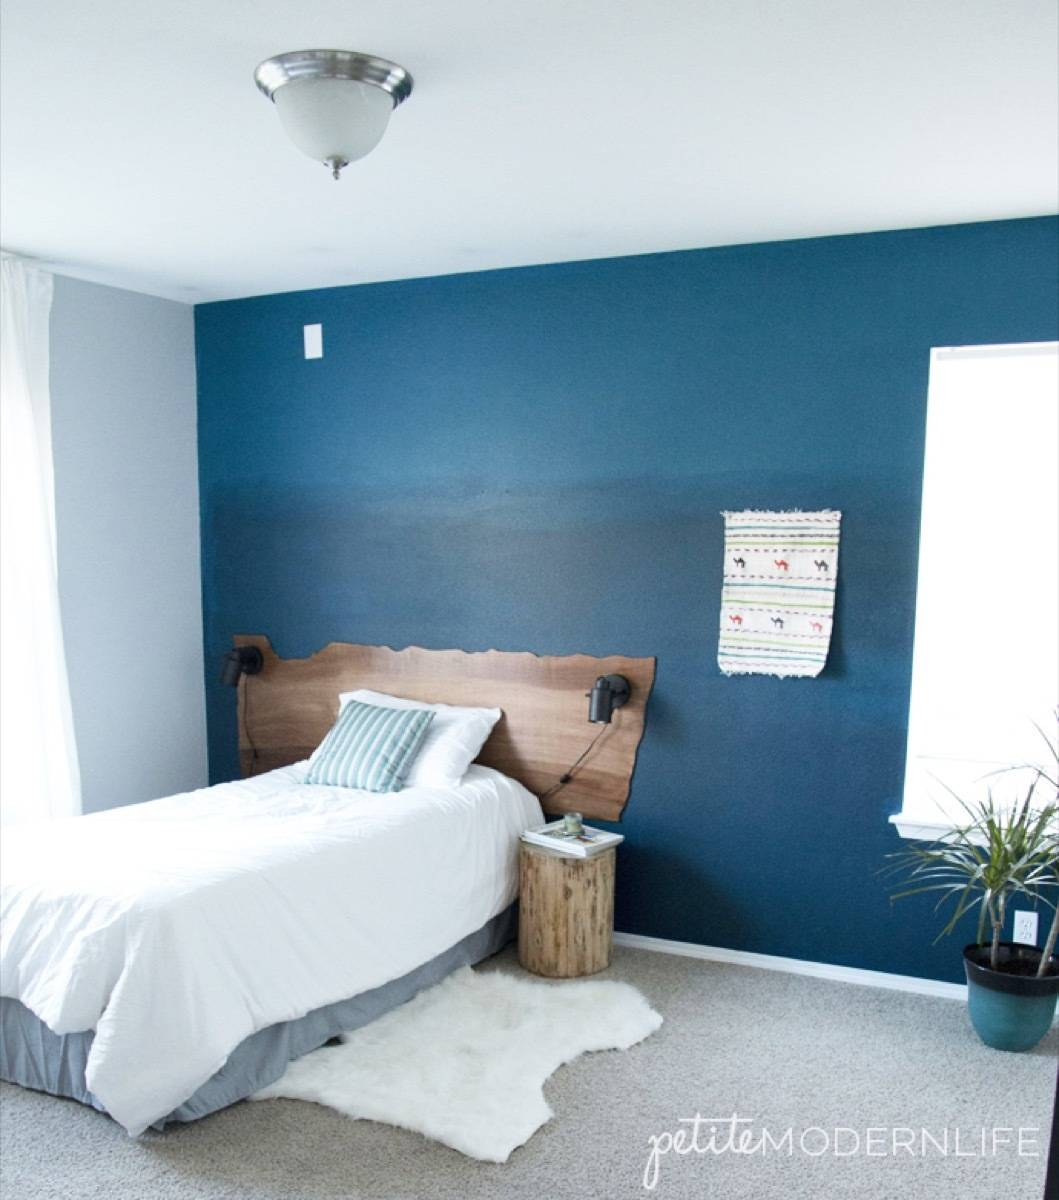 Blue and white bedroom with sheepskin rug on carpeted floor